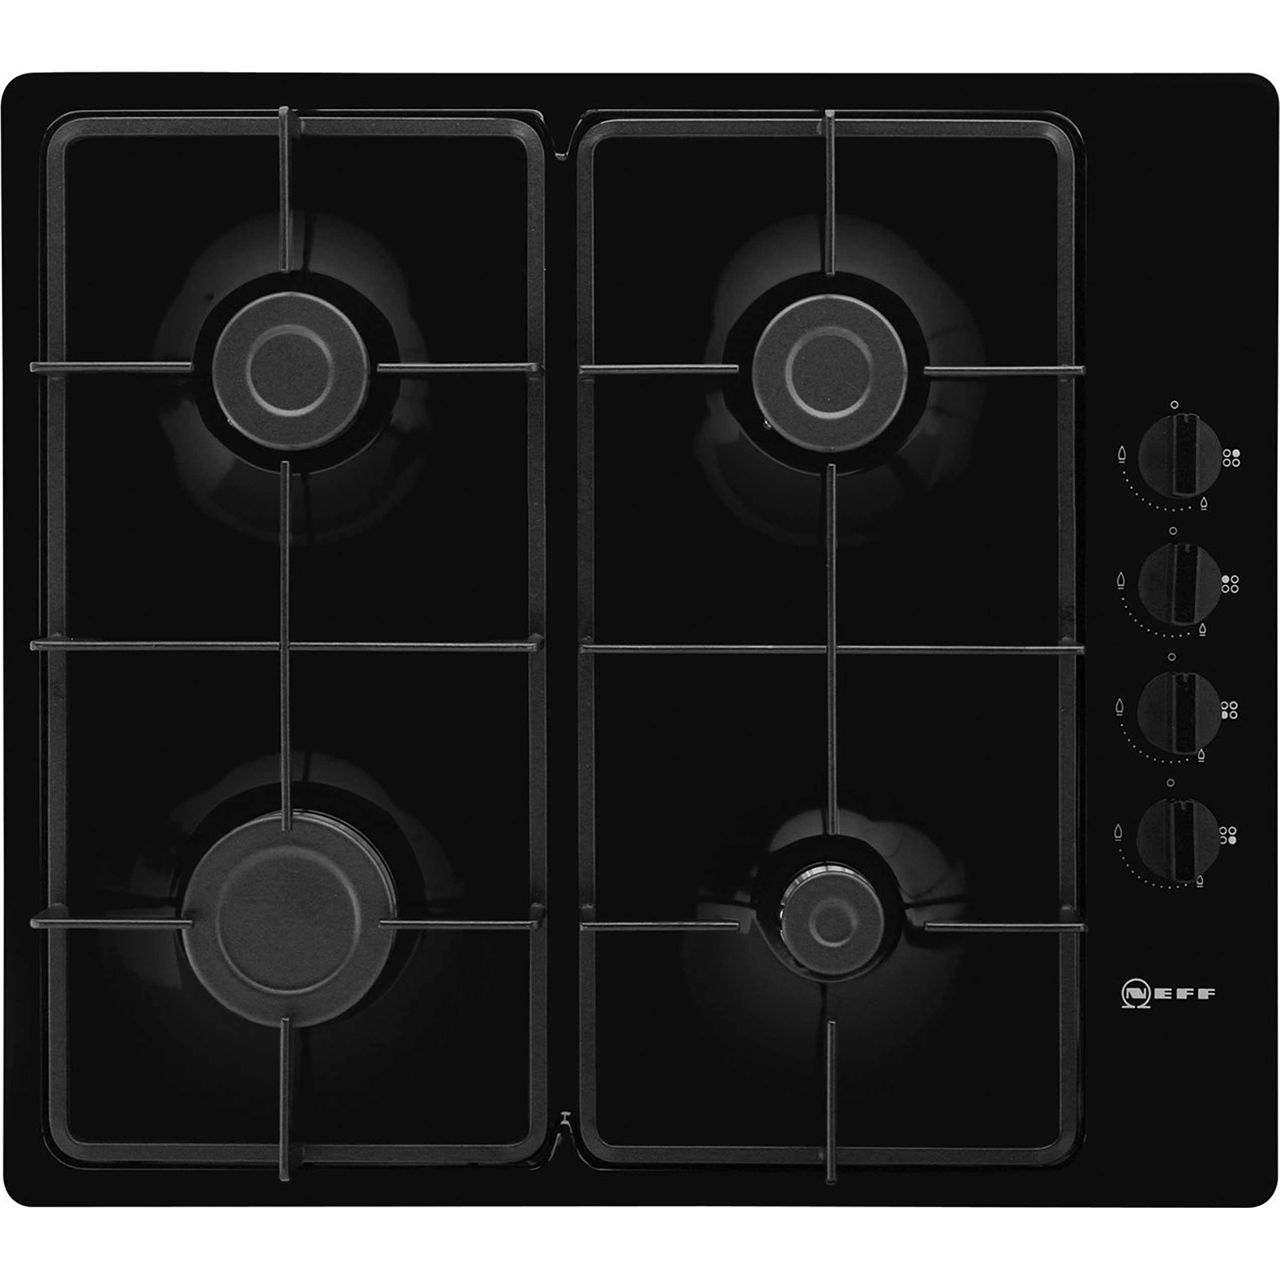 Neff T26BR46S0 Integrated Gas Hob in Black